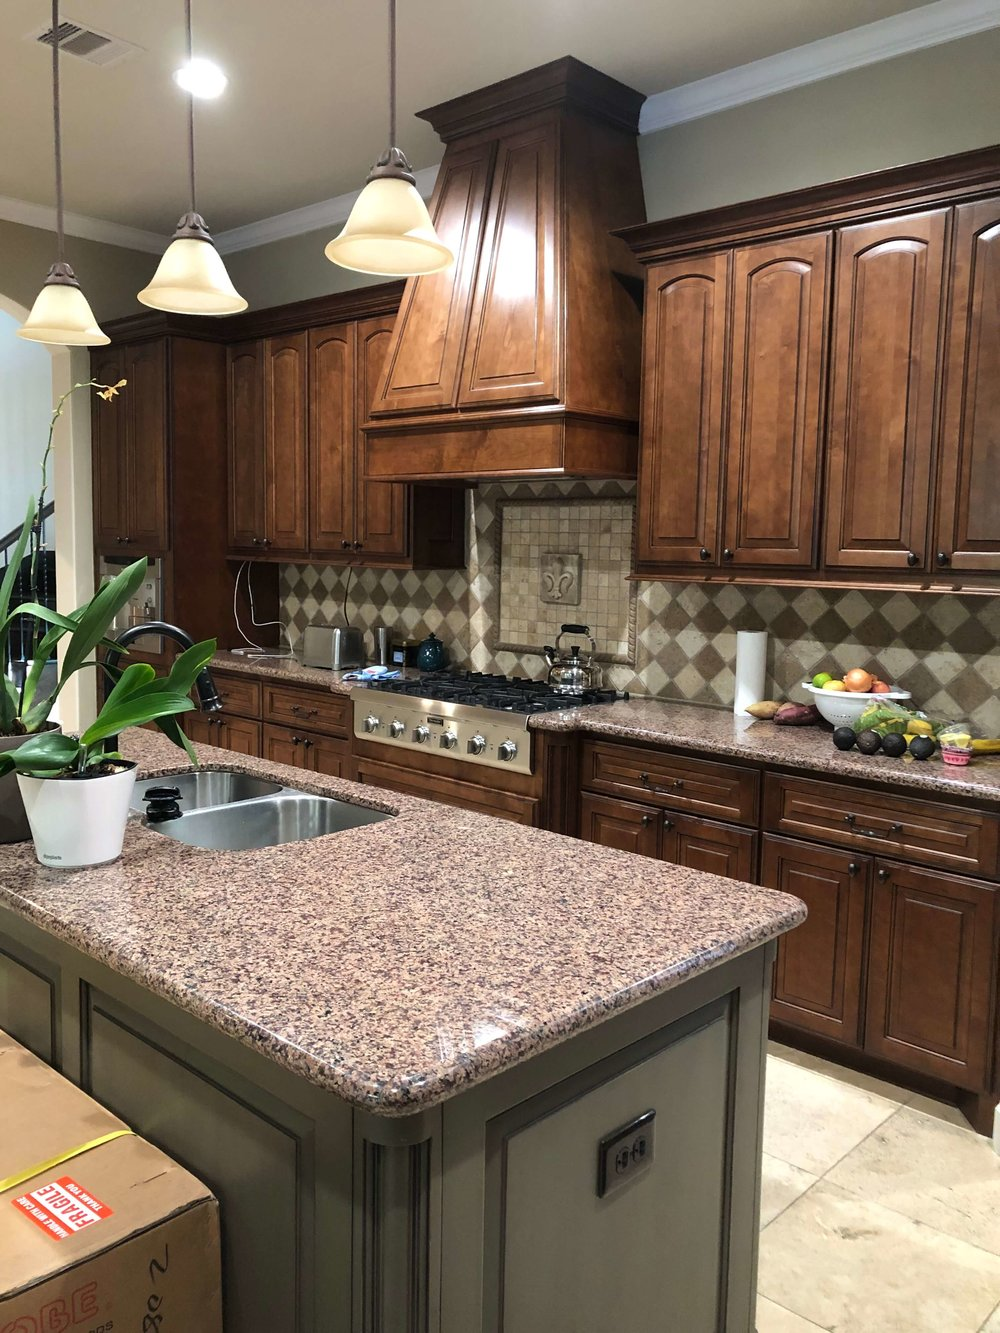 BEFORE - Kitchen to be remodeled. The pinkish toned granite didn't work with the warmer toned backsplash or floor.